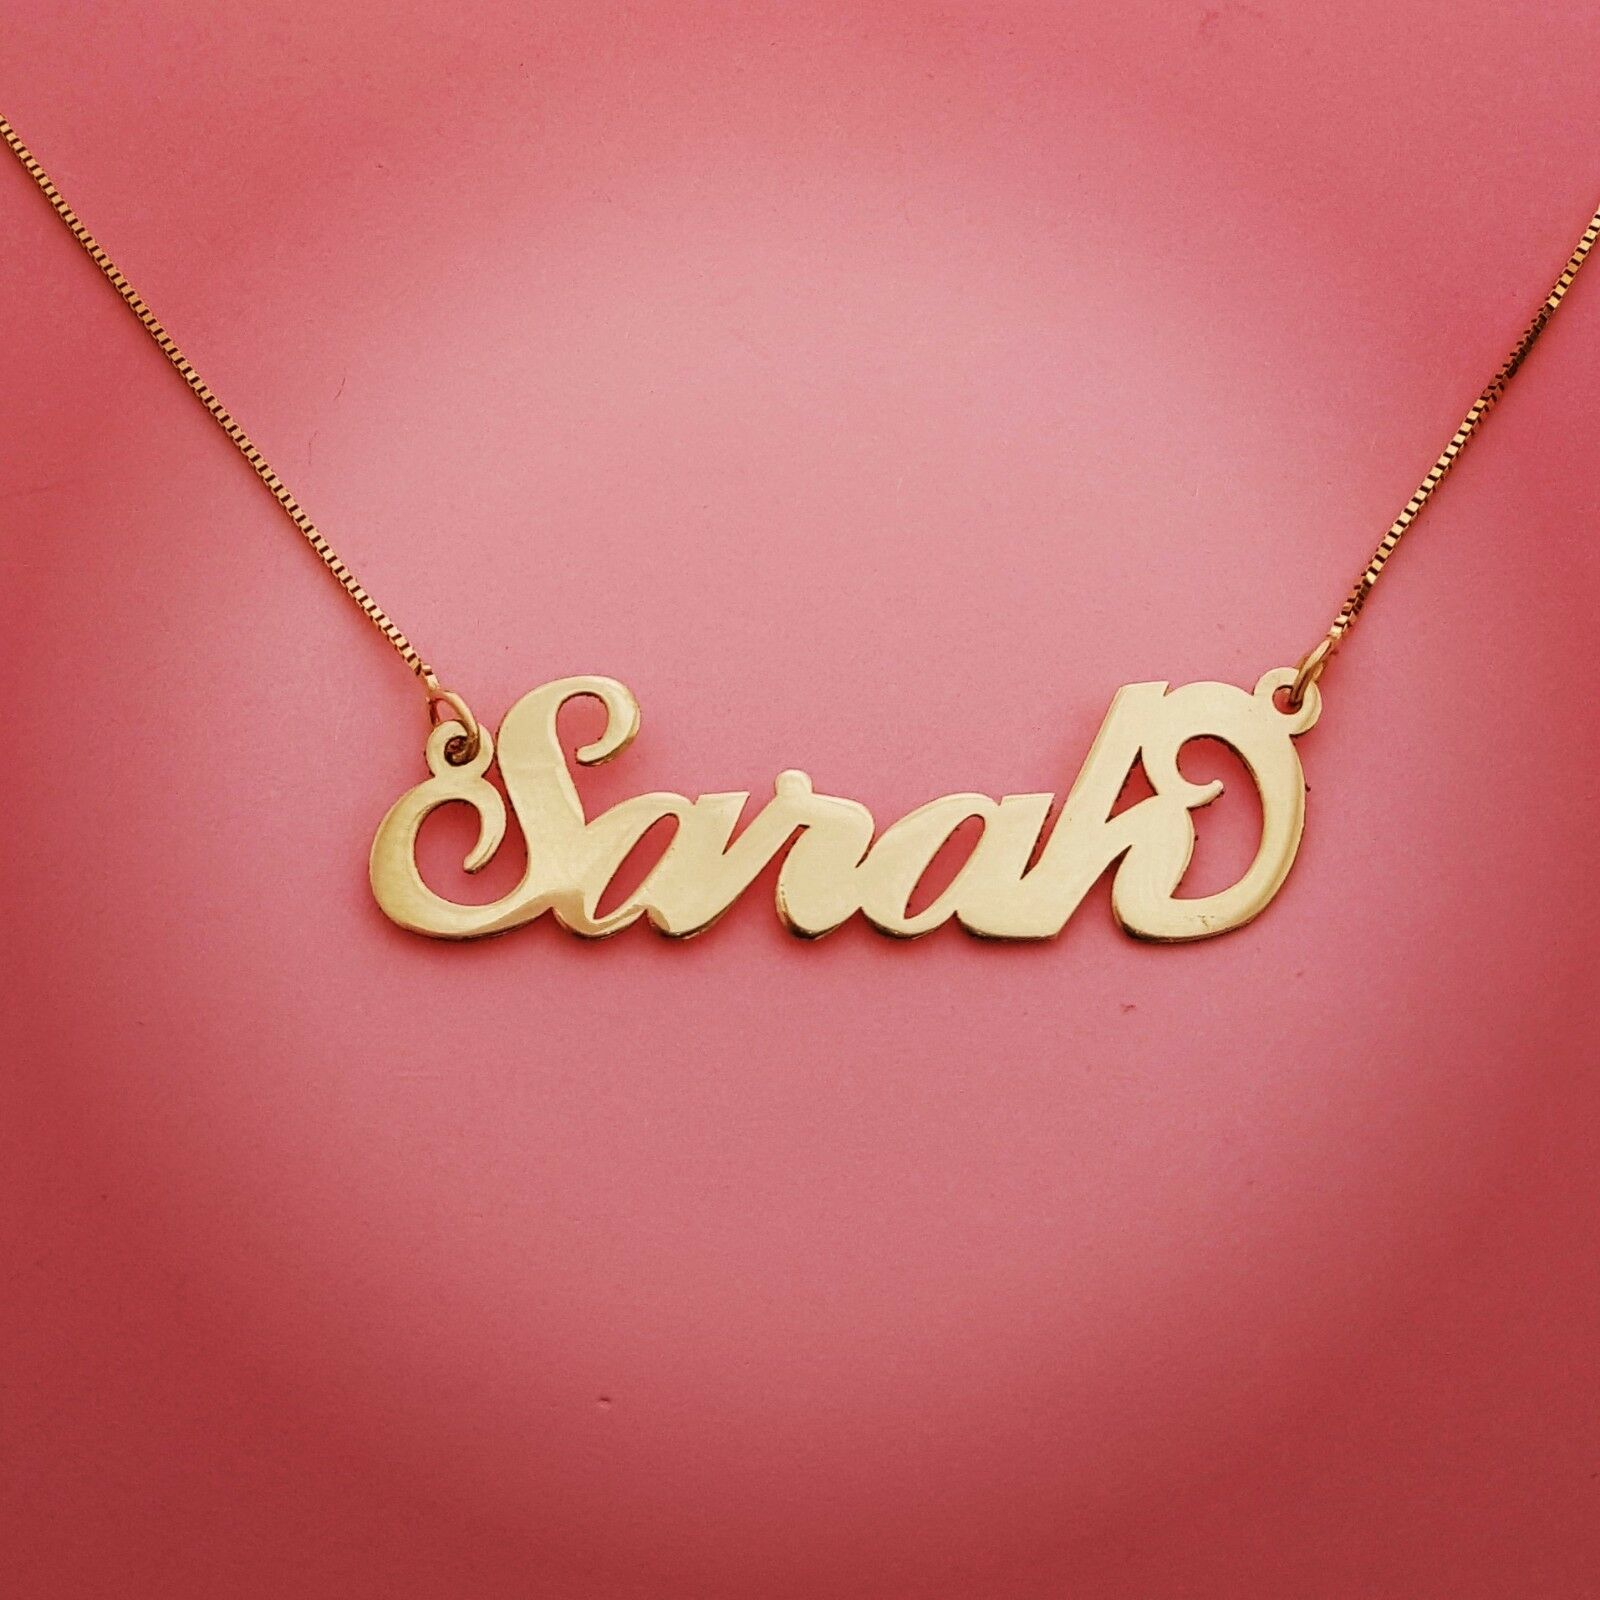 Christmas Gift  Order any name  Personalized Jewelry Solid read pure 14k gold